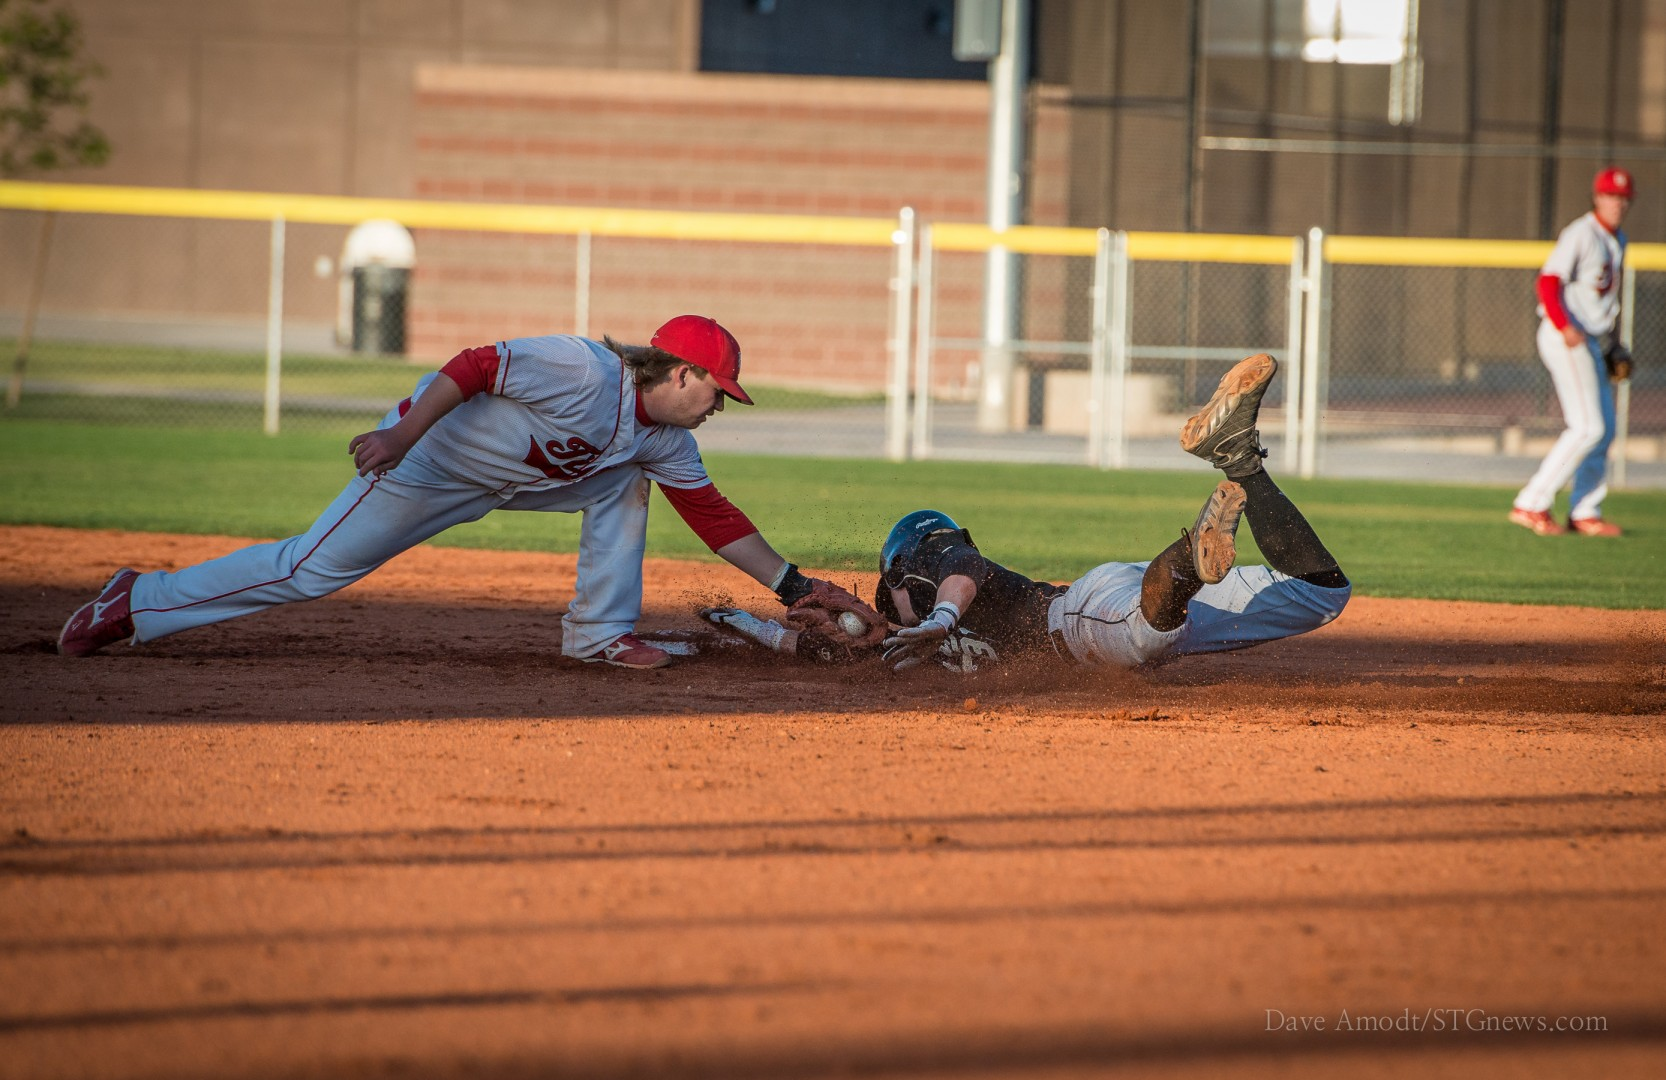 Ben Parker makes a tag on Ty Rutledge Friday night, Desert Hills at Hurricane, Hurricane, Utah, May 3, 2013 | Photo by Dave Amodt, St. George News